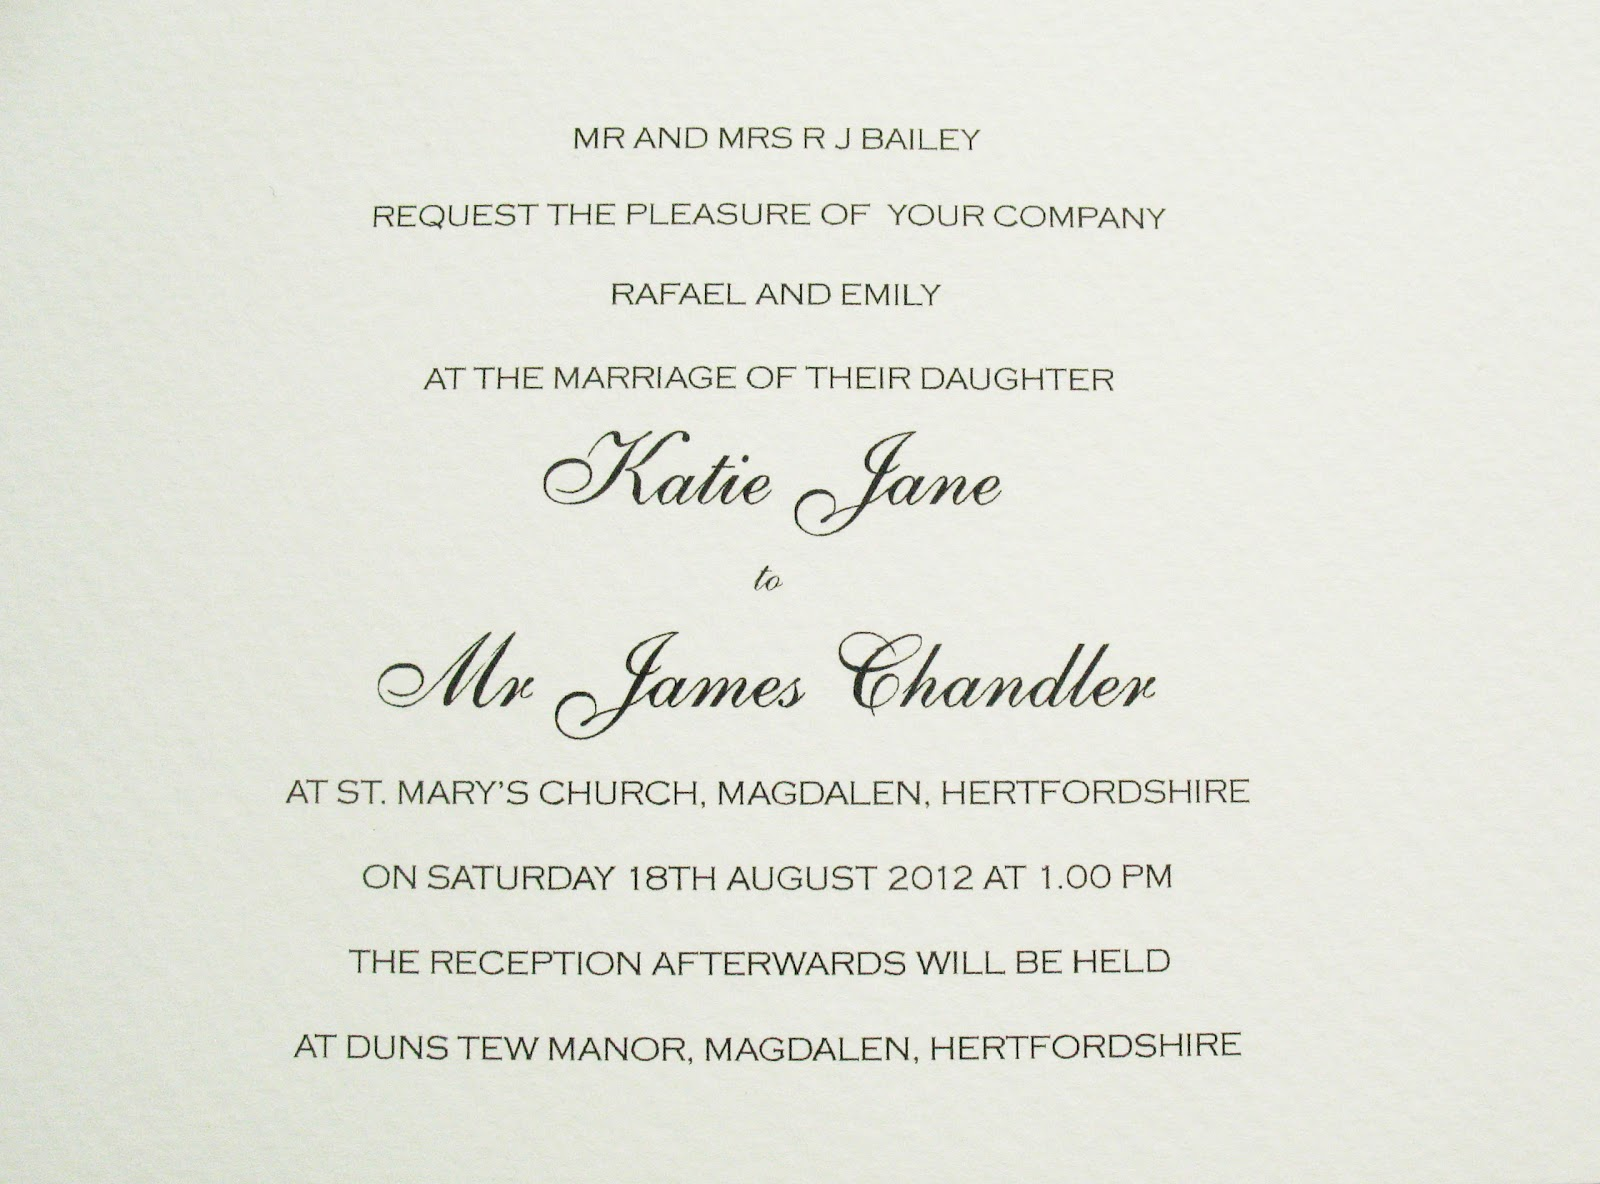 Sample Of A Wedding Invitation: Inspiration For Weddings, Invitations And Stationery